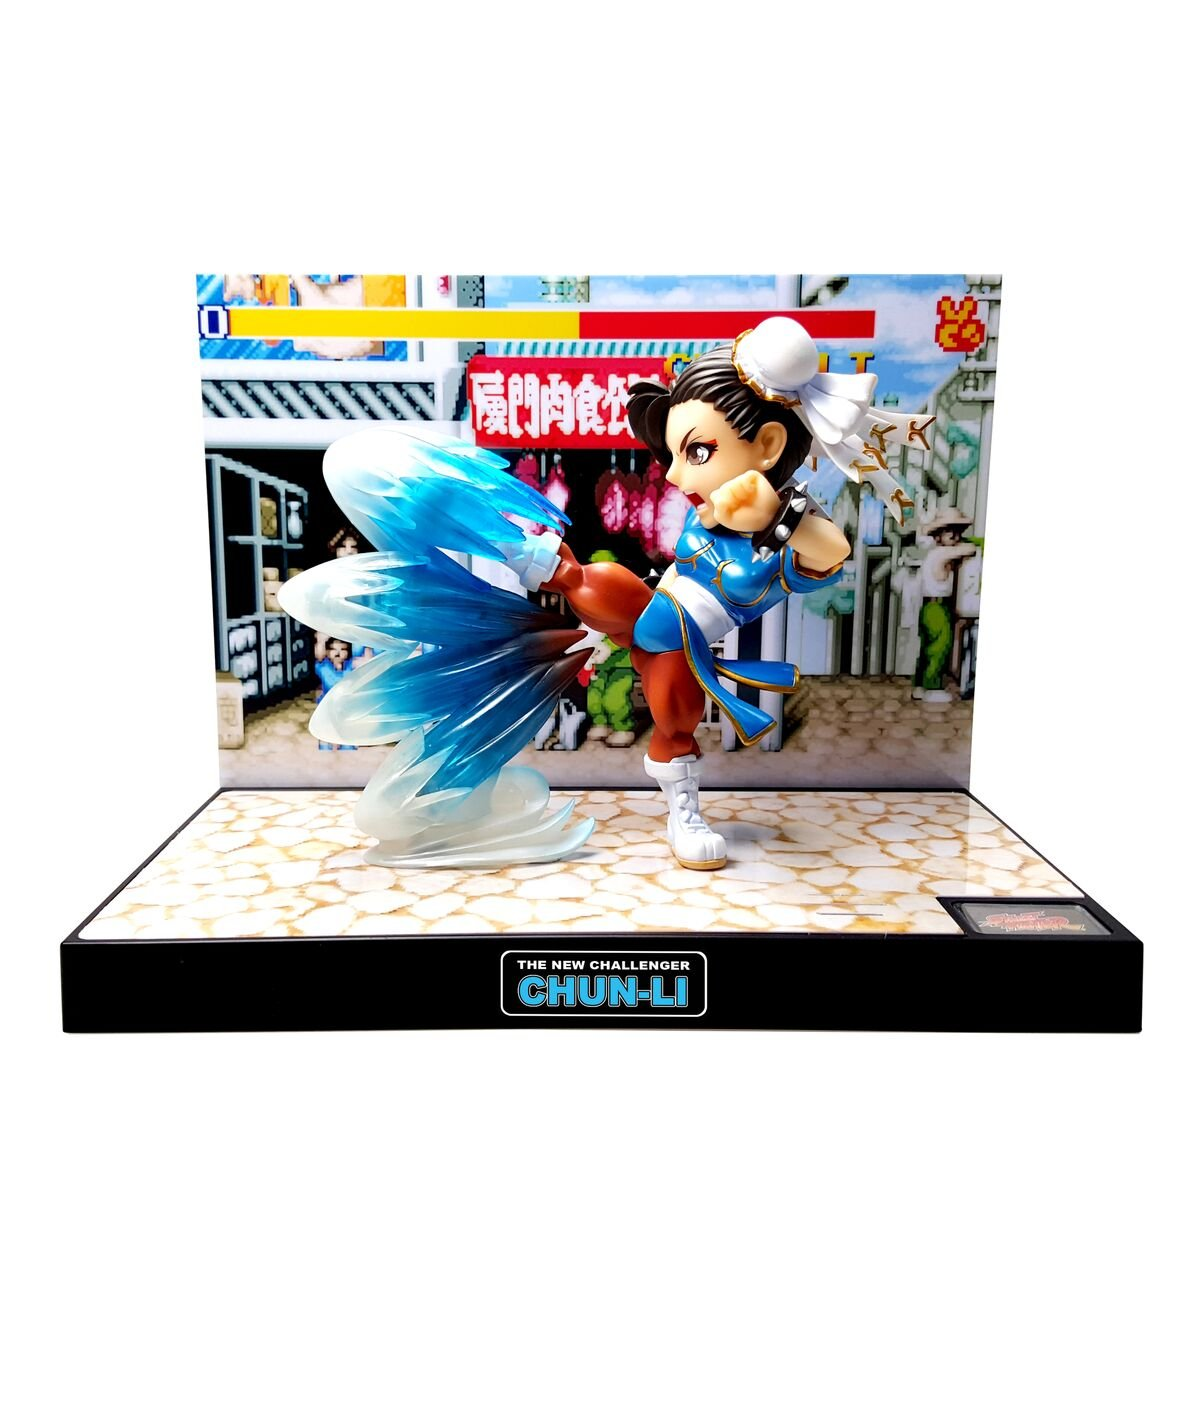 Tier1 Accessories Chun-Li Street Fighter Fully Licensed LED Light and Sound Figure - PlayStation 3;PlayStation 2;PlayStation;